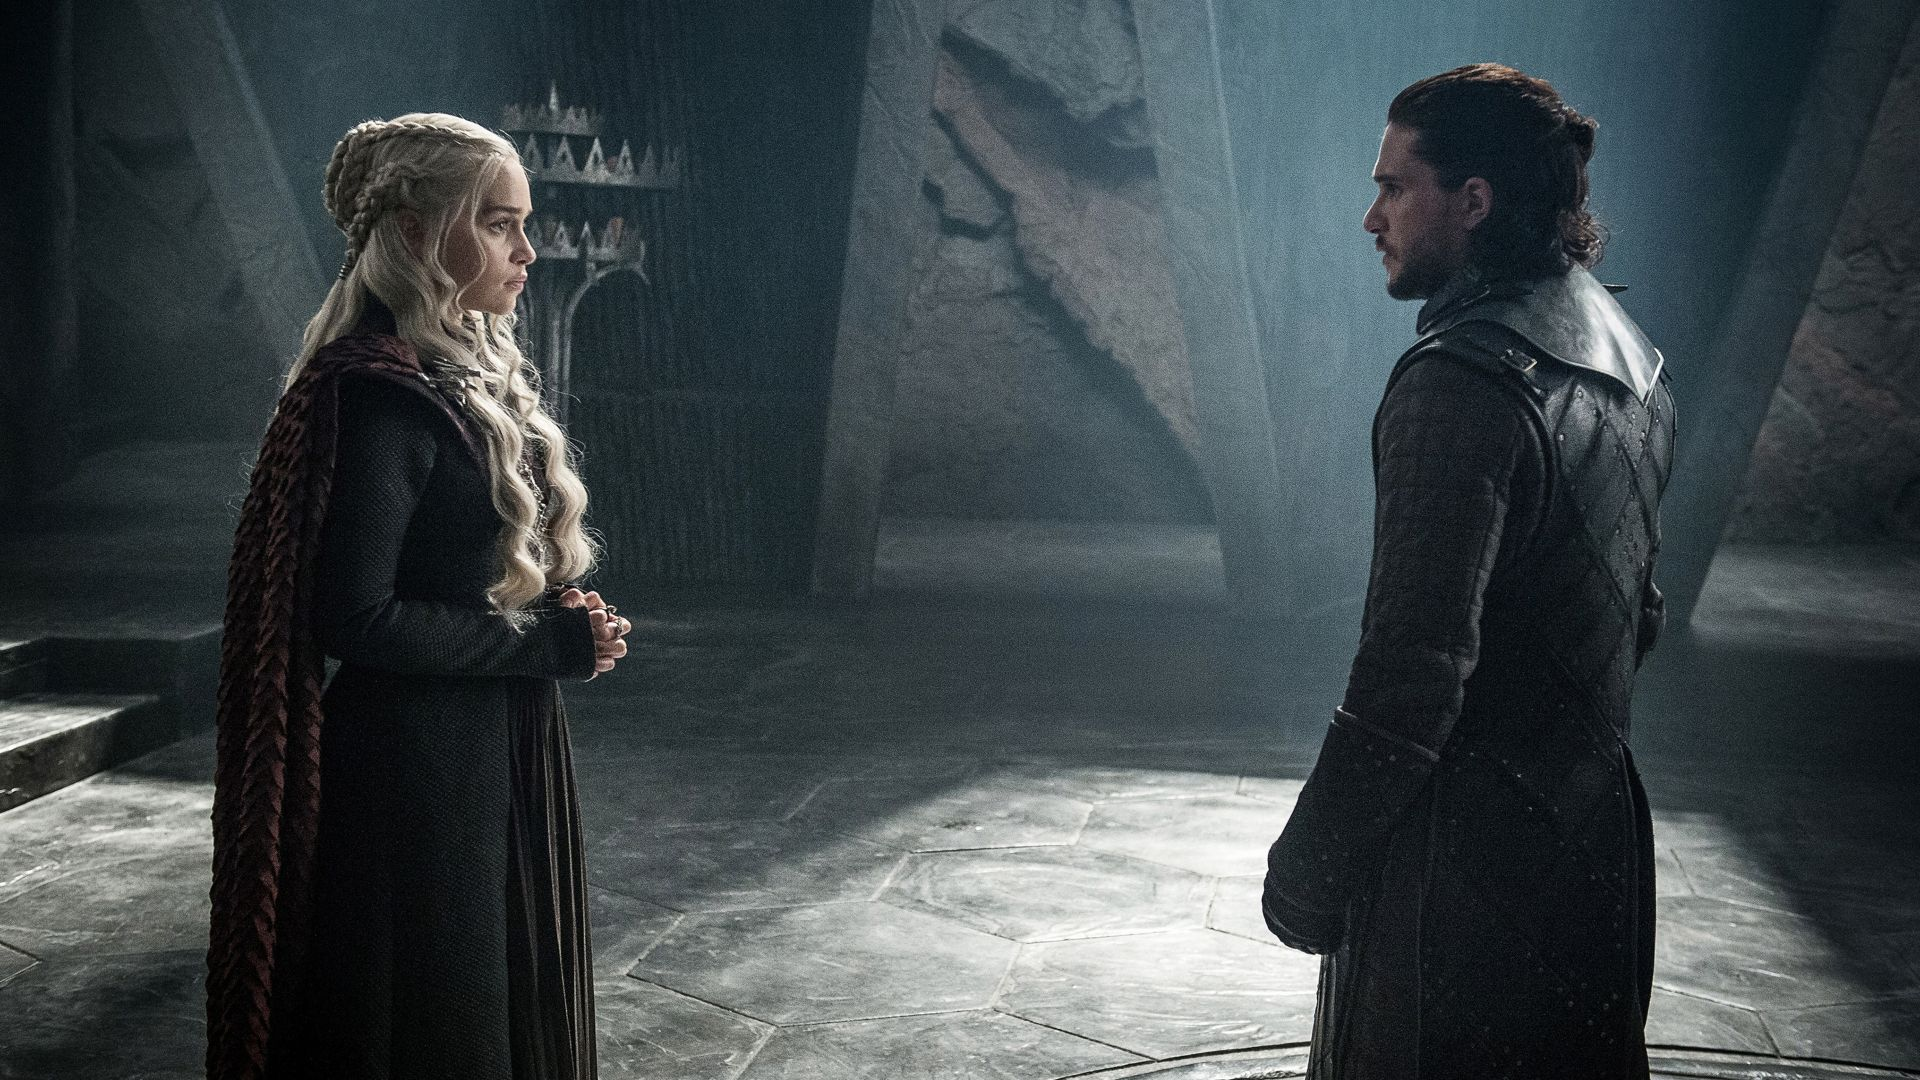 Game of Thrones Season 7, Jon Snow, Daenerys Targaryen, Kit Harington, Emilia Clarke, TV Series, 4k (horizontal)